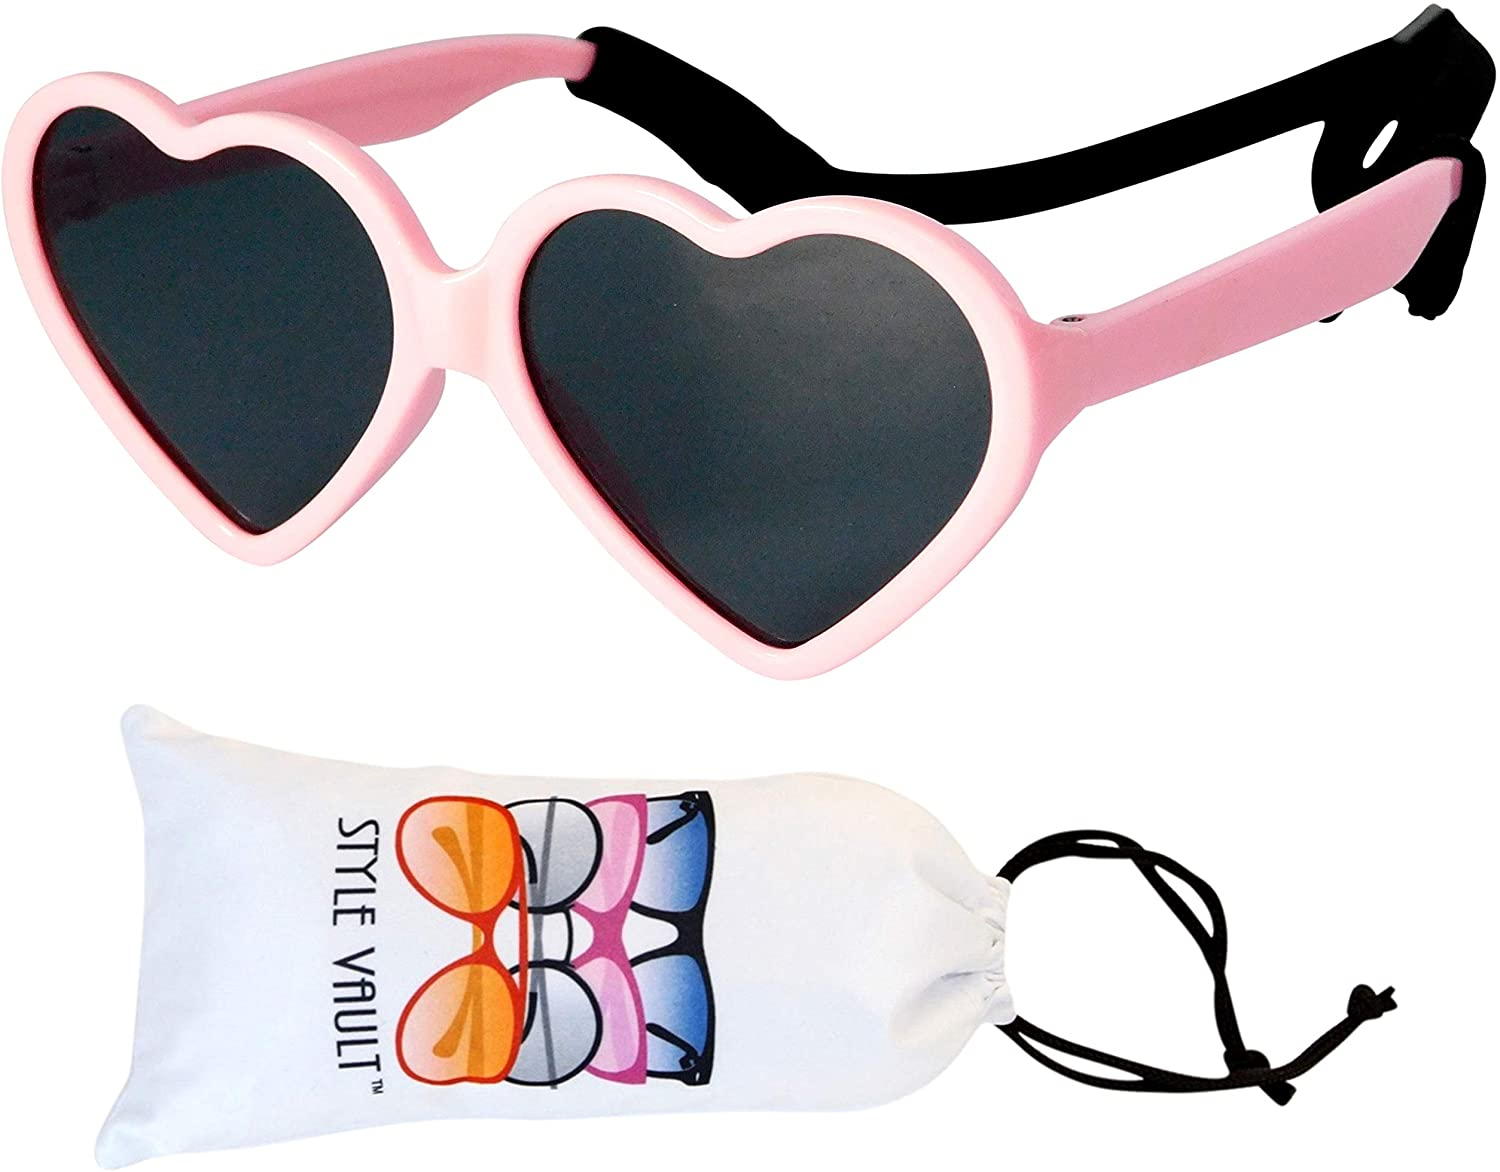 Kd3141 Infant Toddler Age 0-24 Months Heart Baby Sunglasses